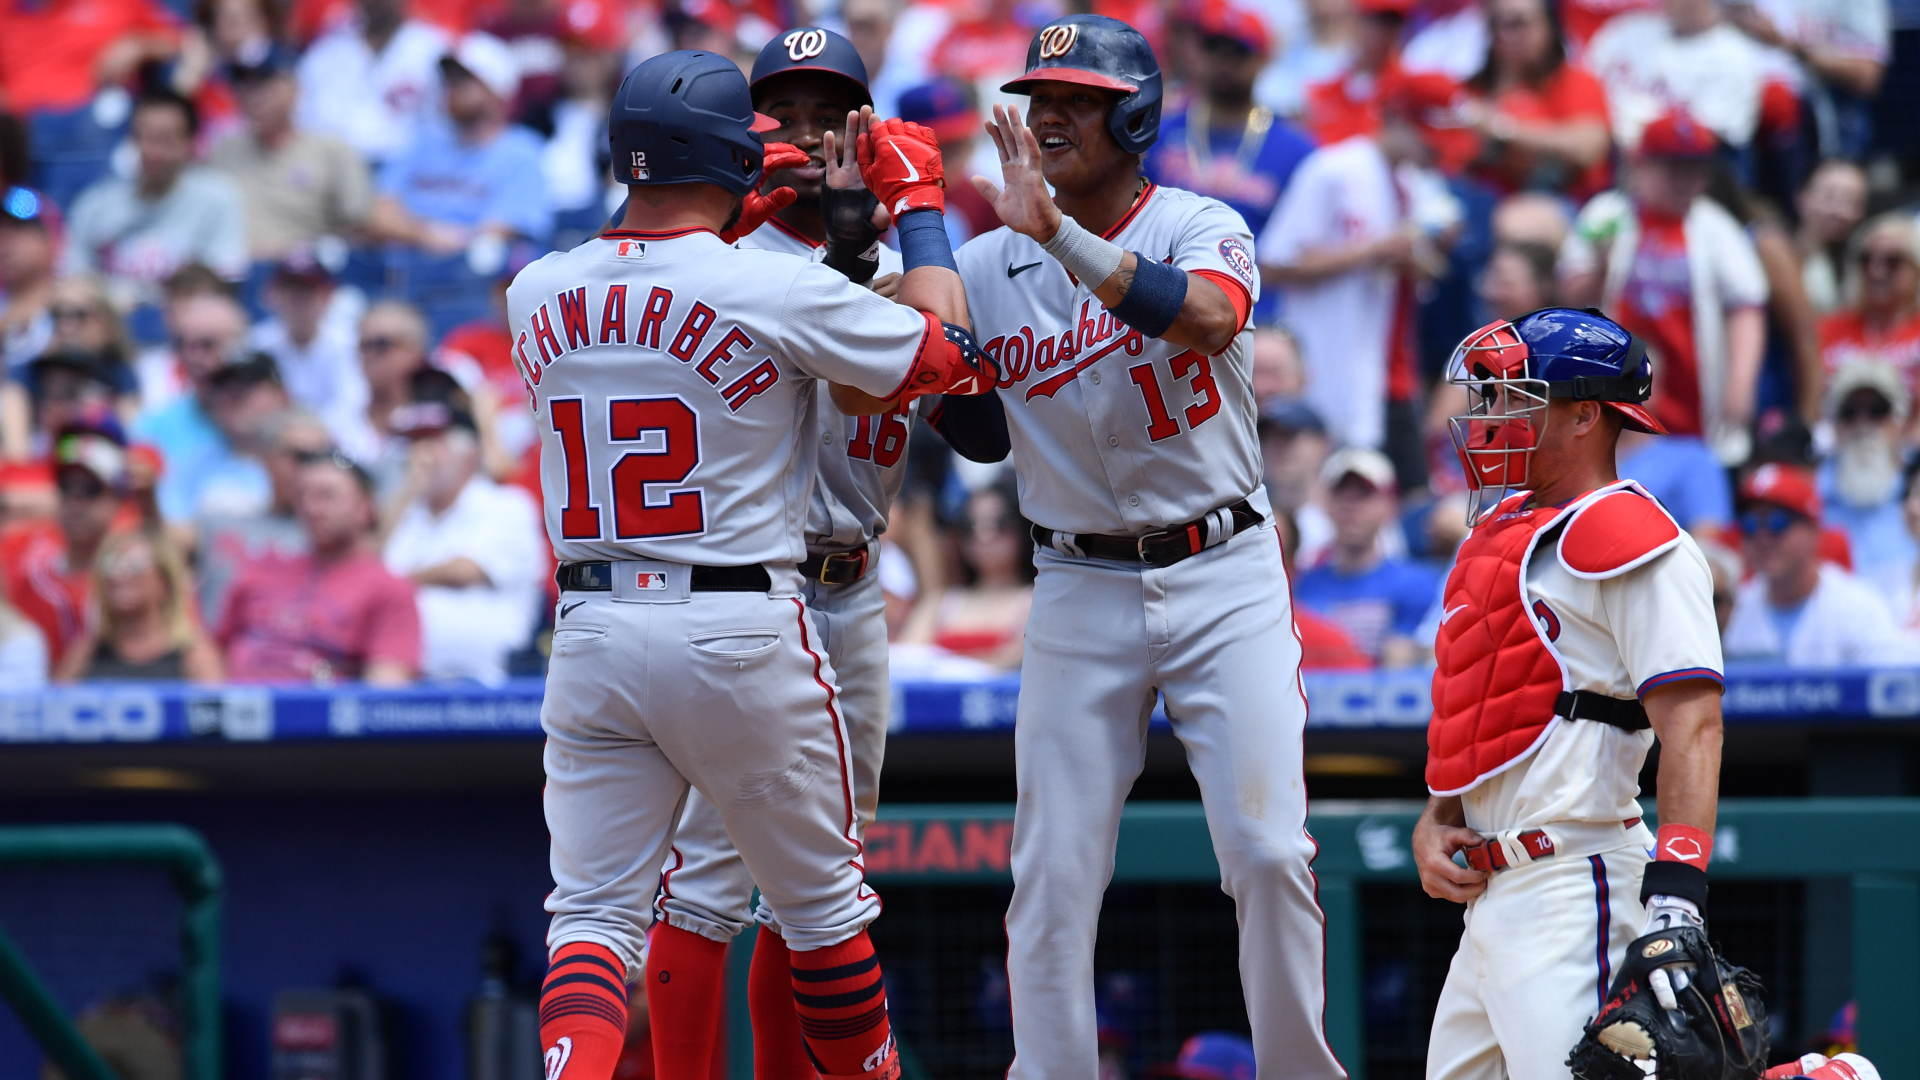 Kyle Schwarber scored his 10th home run in 12 games as the Washington Nationals and the Philadelphia Phillies renewed their tense rivalry.